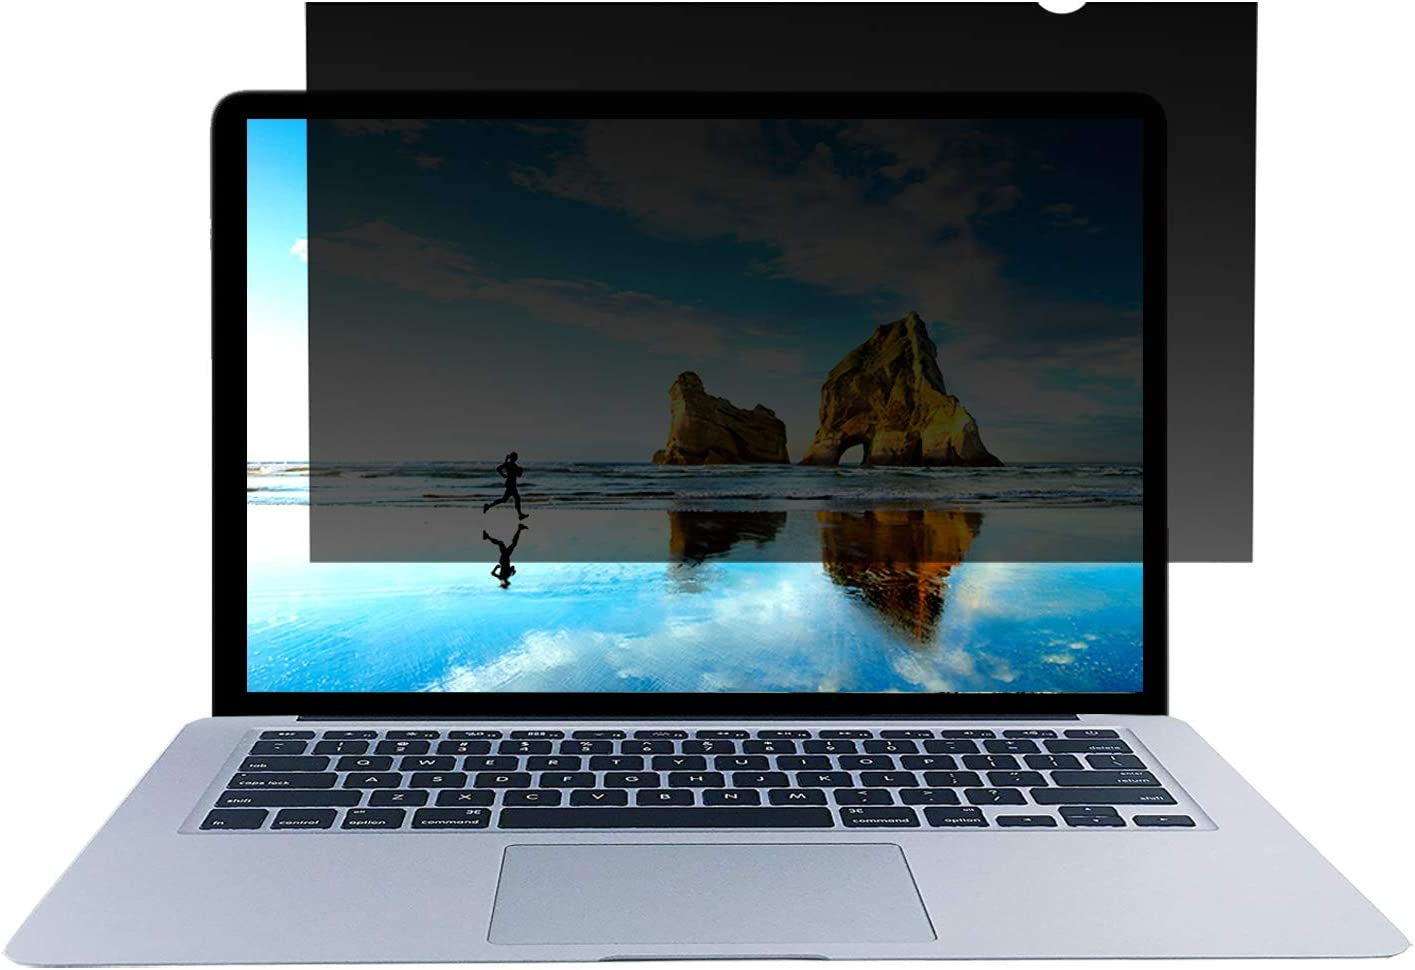 14.1 Inch Privacy Screen for Widescreen Laptop (16:10 Aspect Ratio)